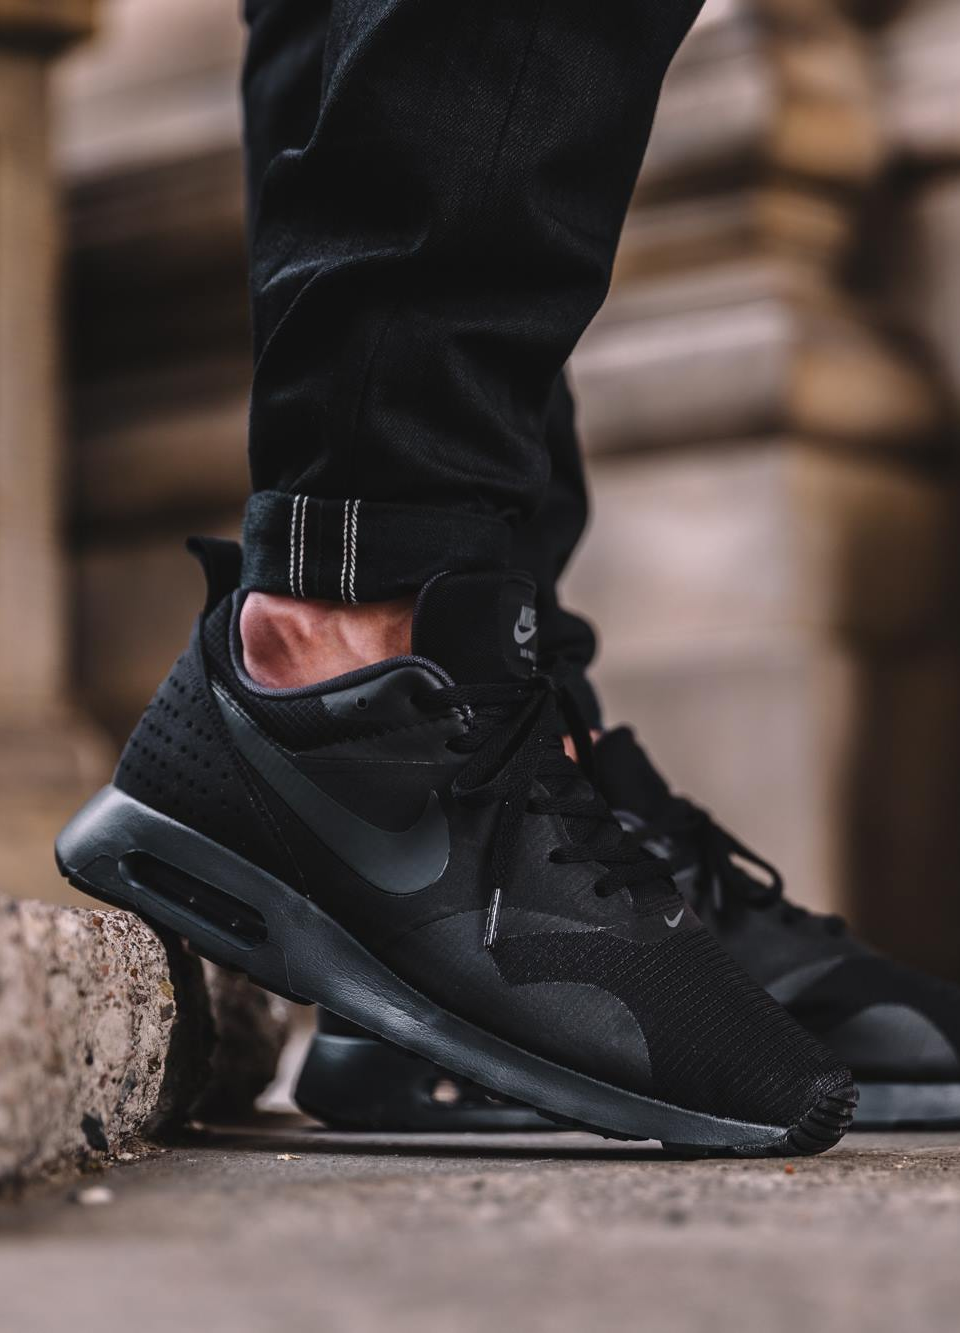 Nike Air Max 1 Blackout Shoes